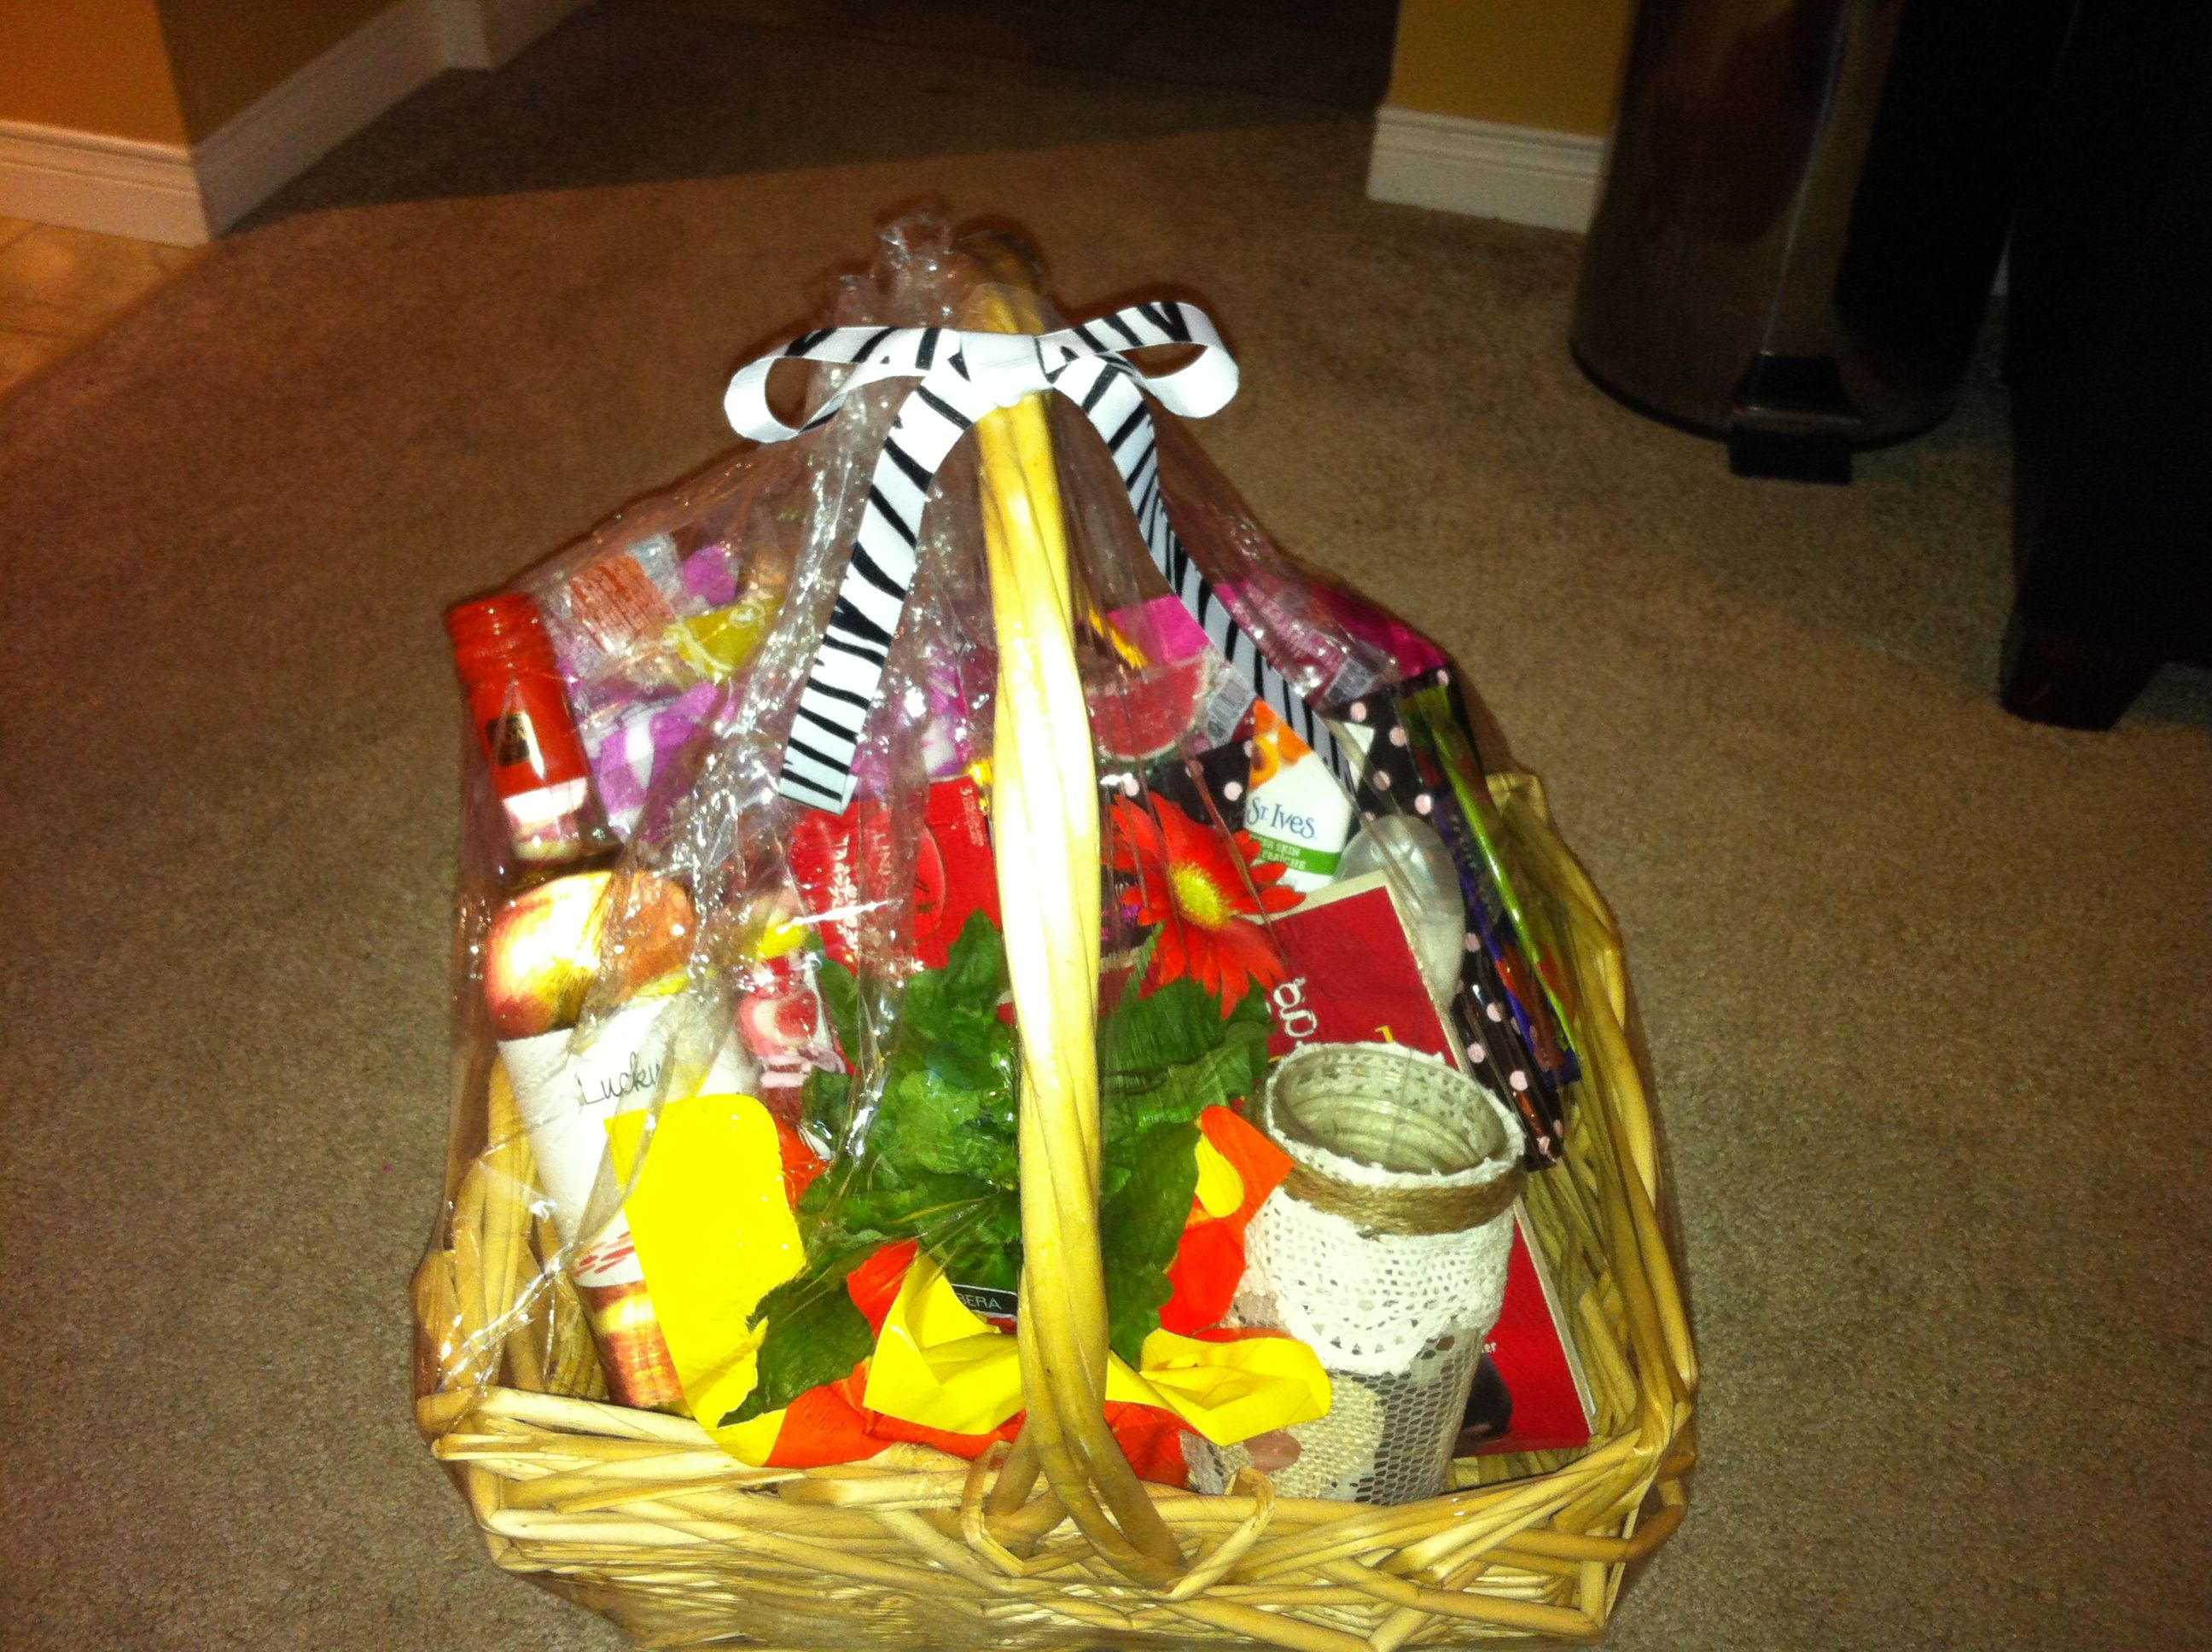 Get Well Gift Basket Love The Clear Wrap It Can Be Purchased At The Dollar Store Place You Get Well Gift Baskets Best Affordable Hair Dryer Get Well Gifts